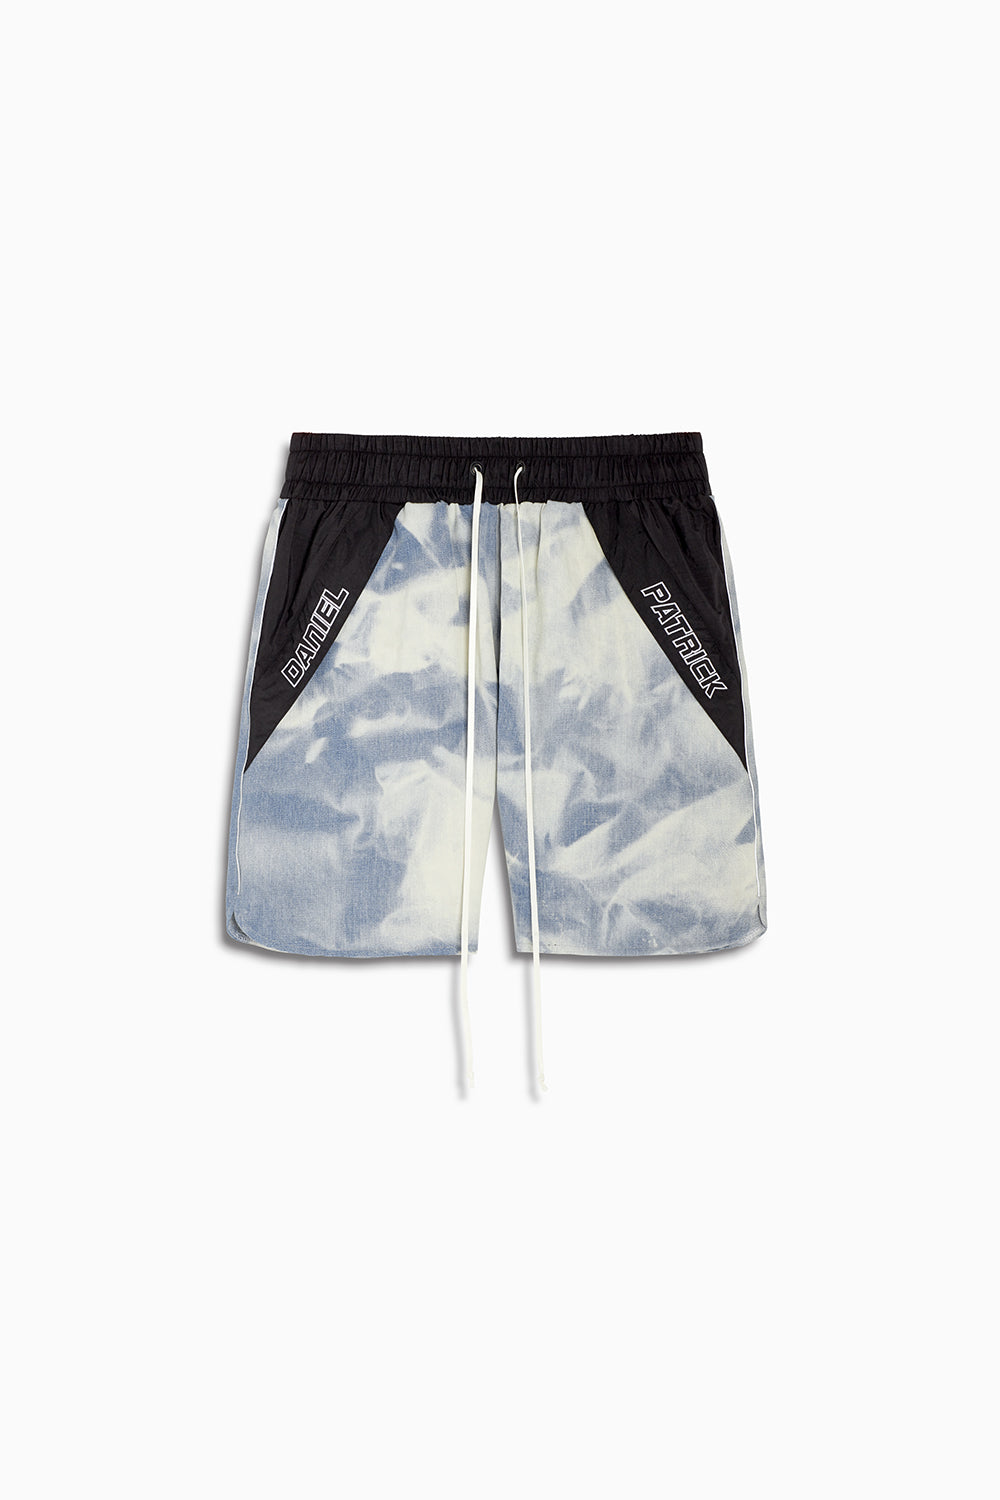 Logo Pocket Gym Short / cloud denim + 3m + black